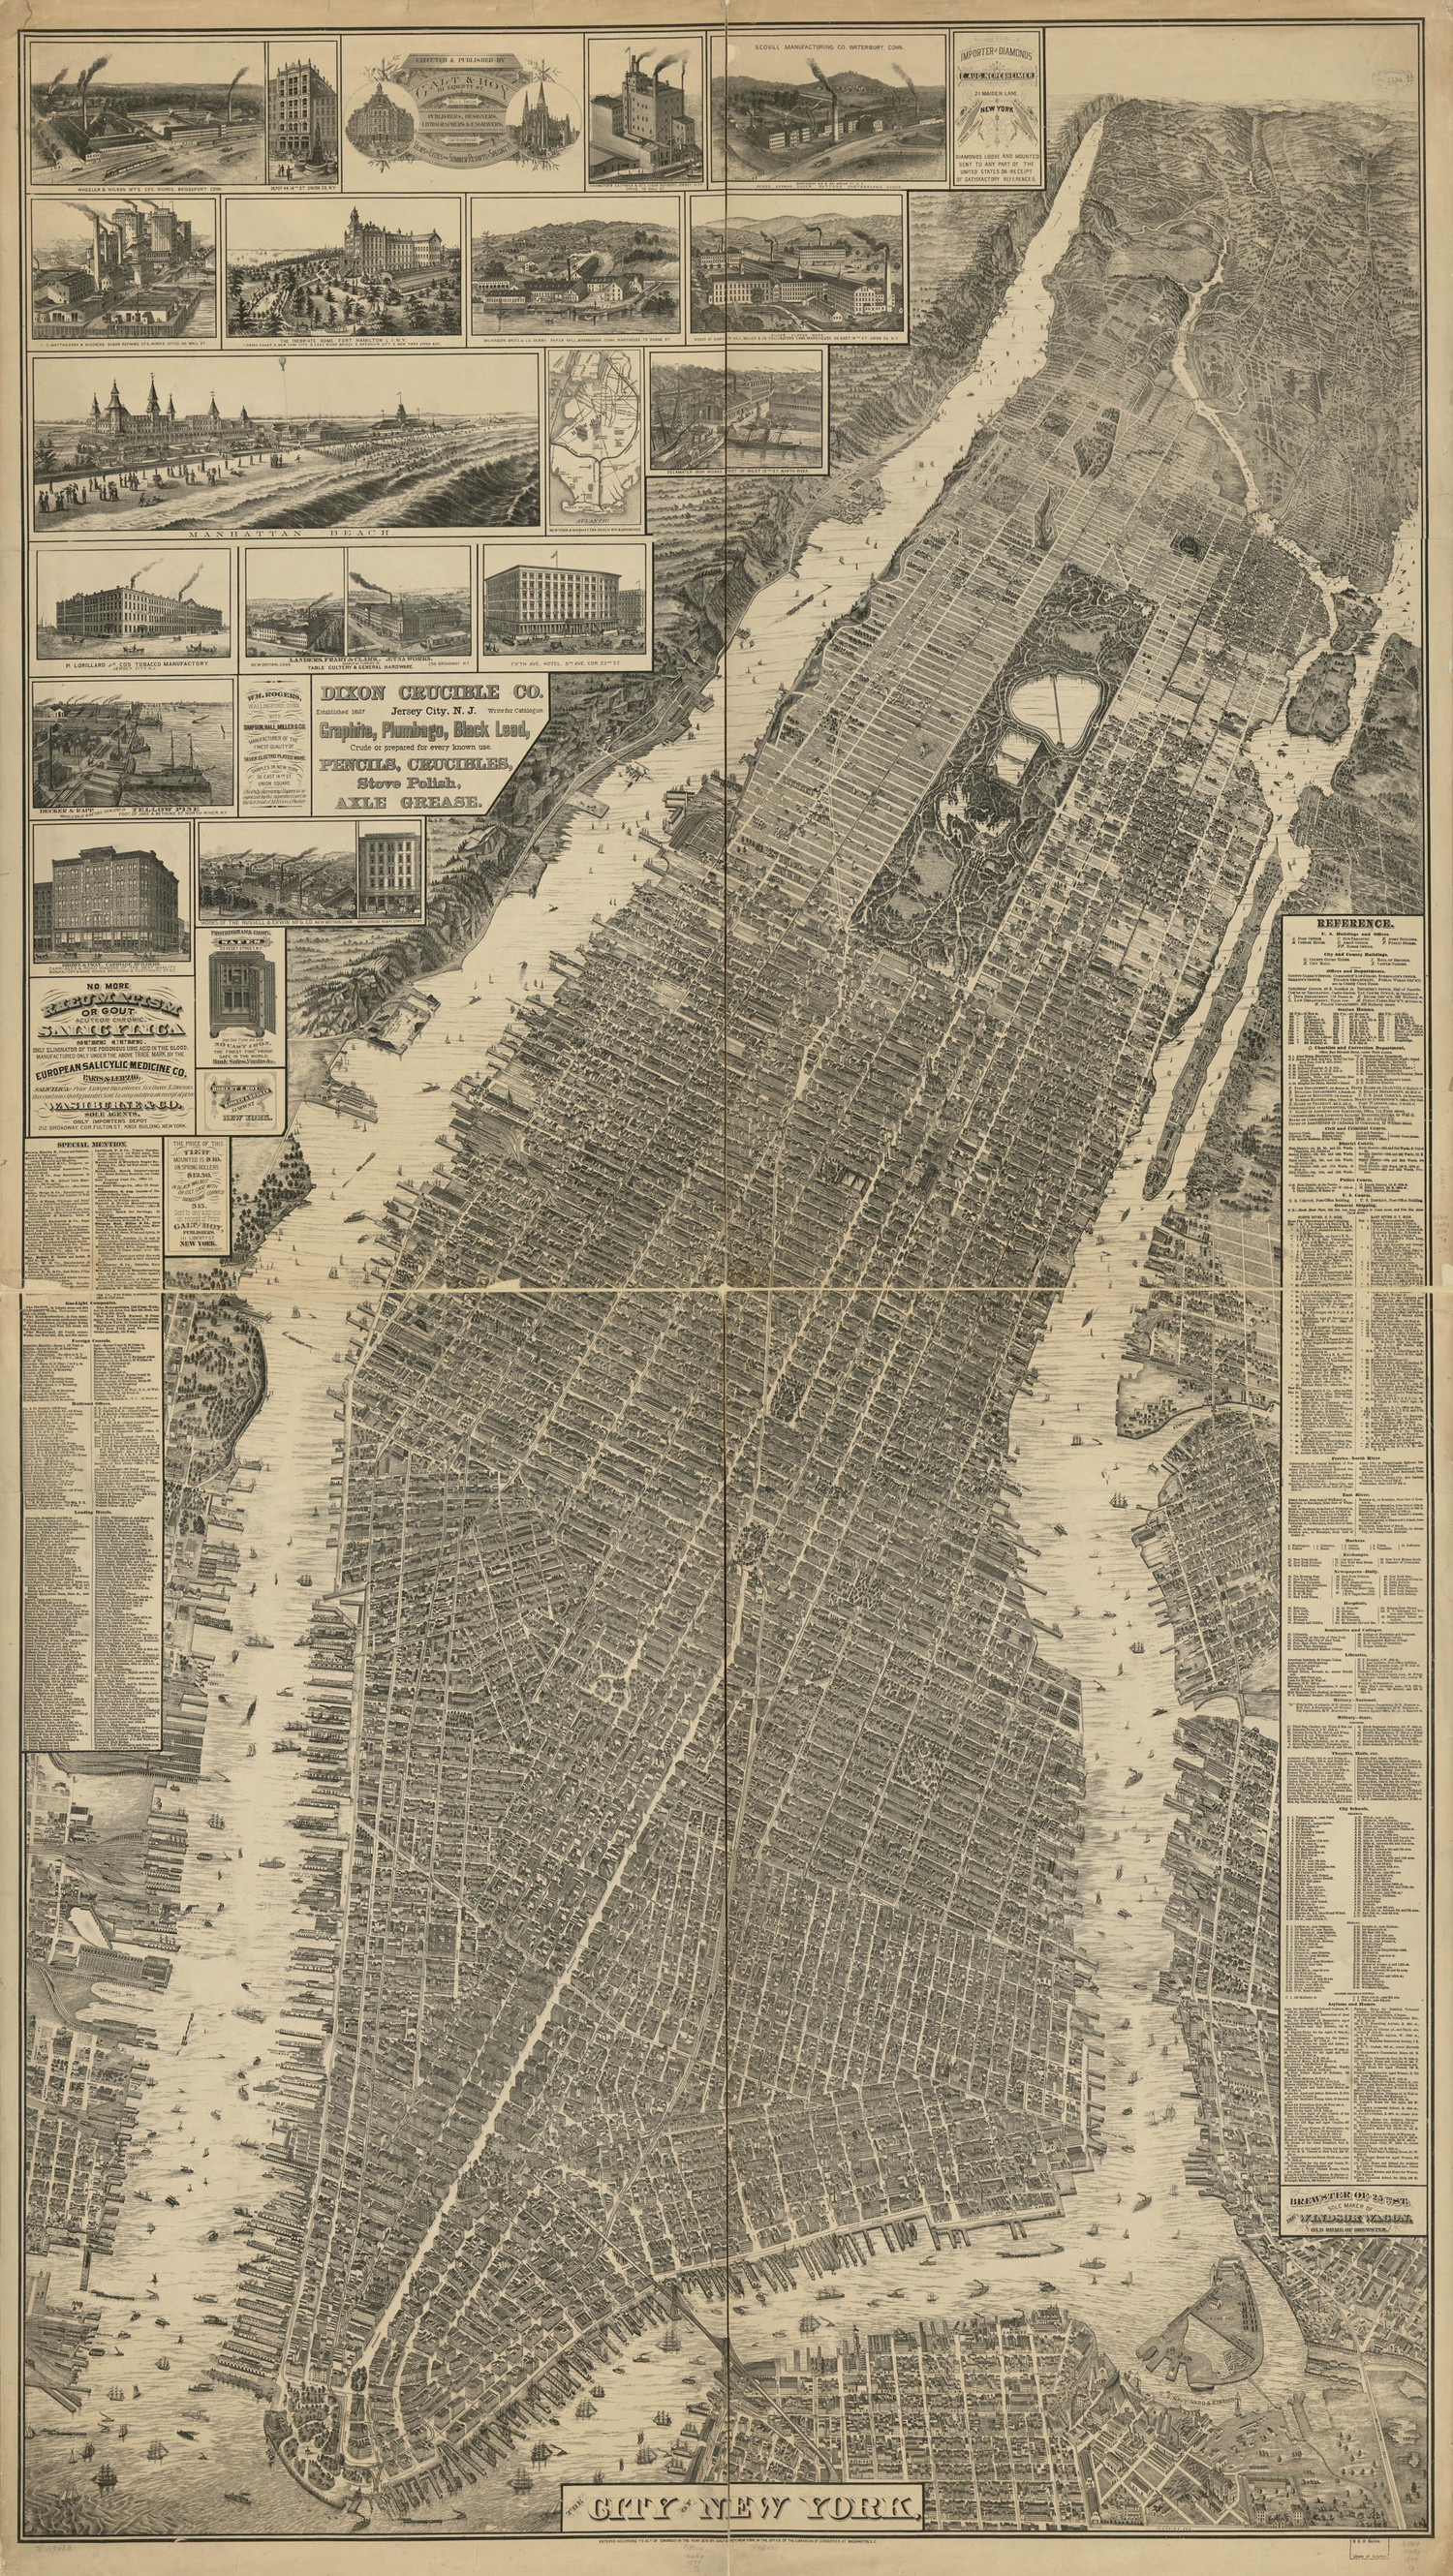 City of New York, 1879